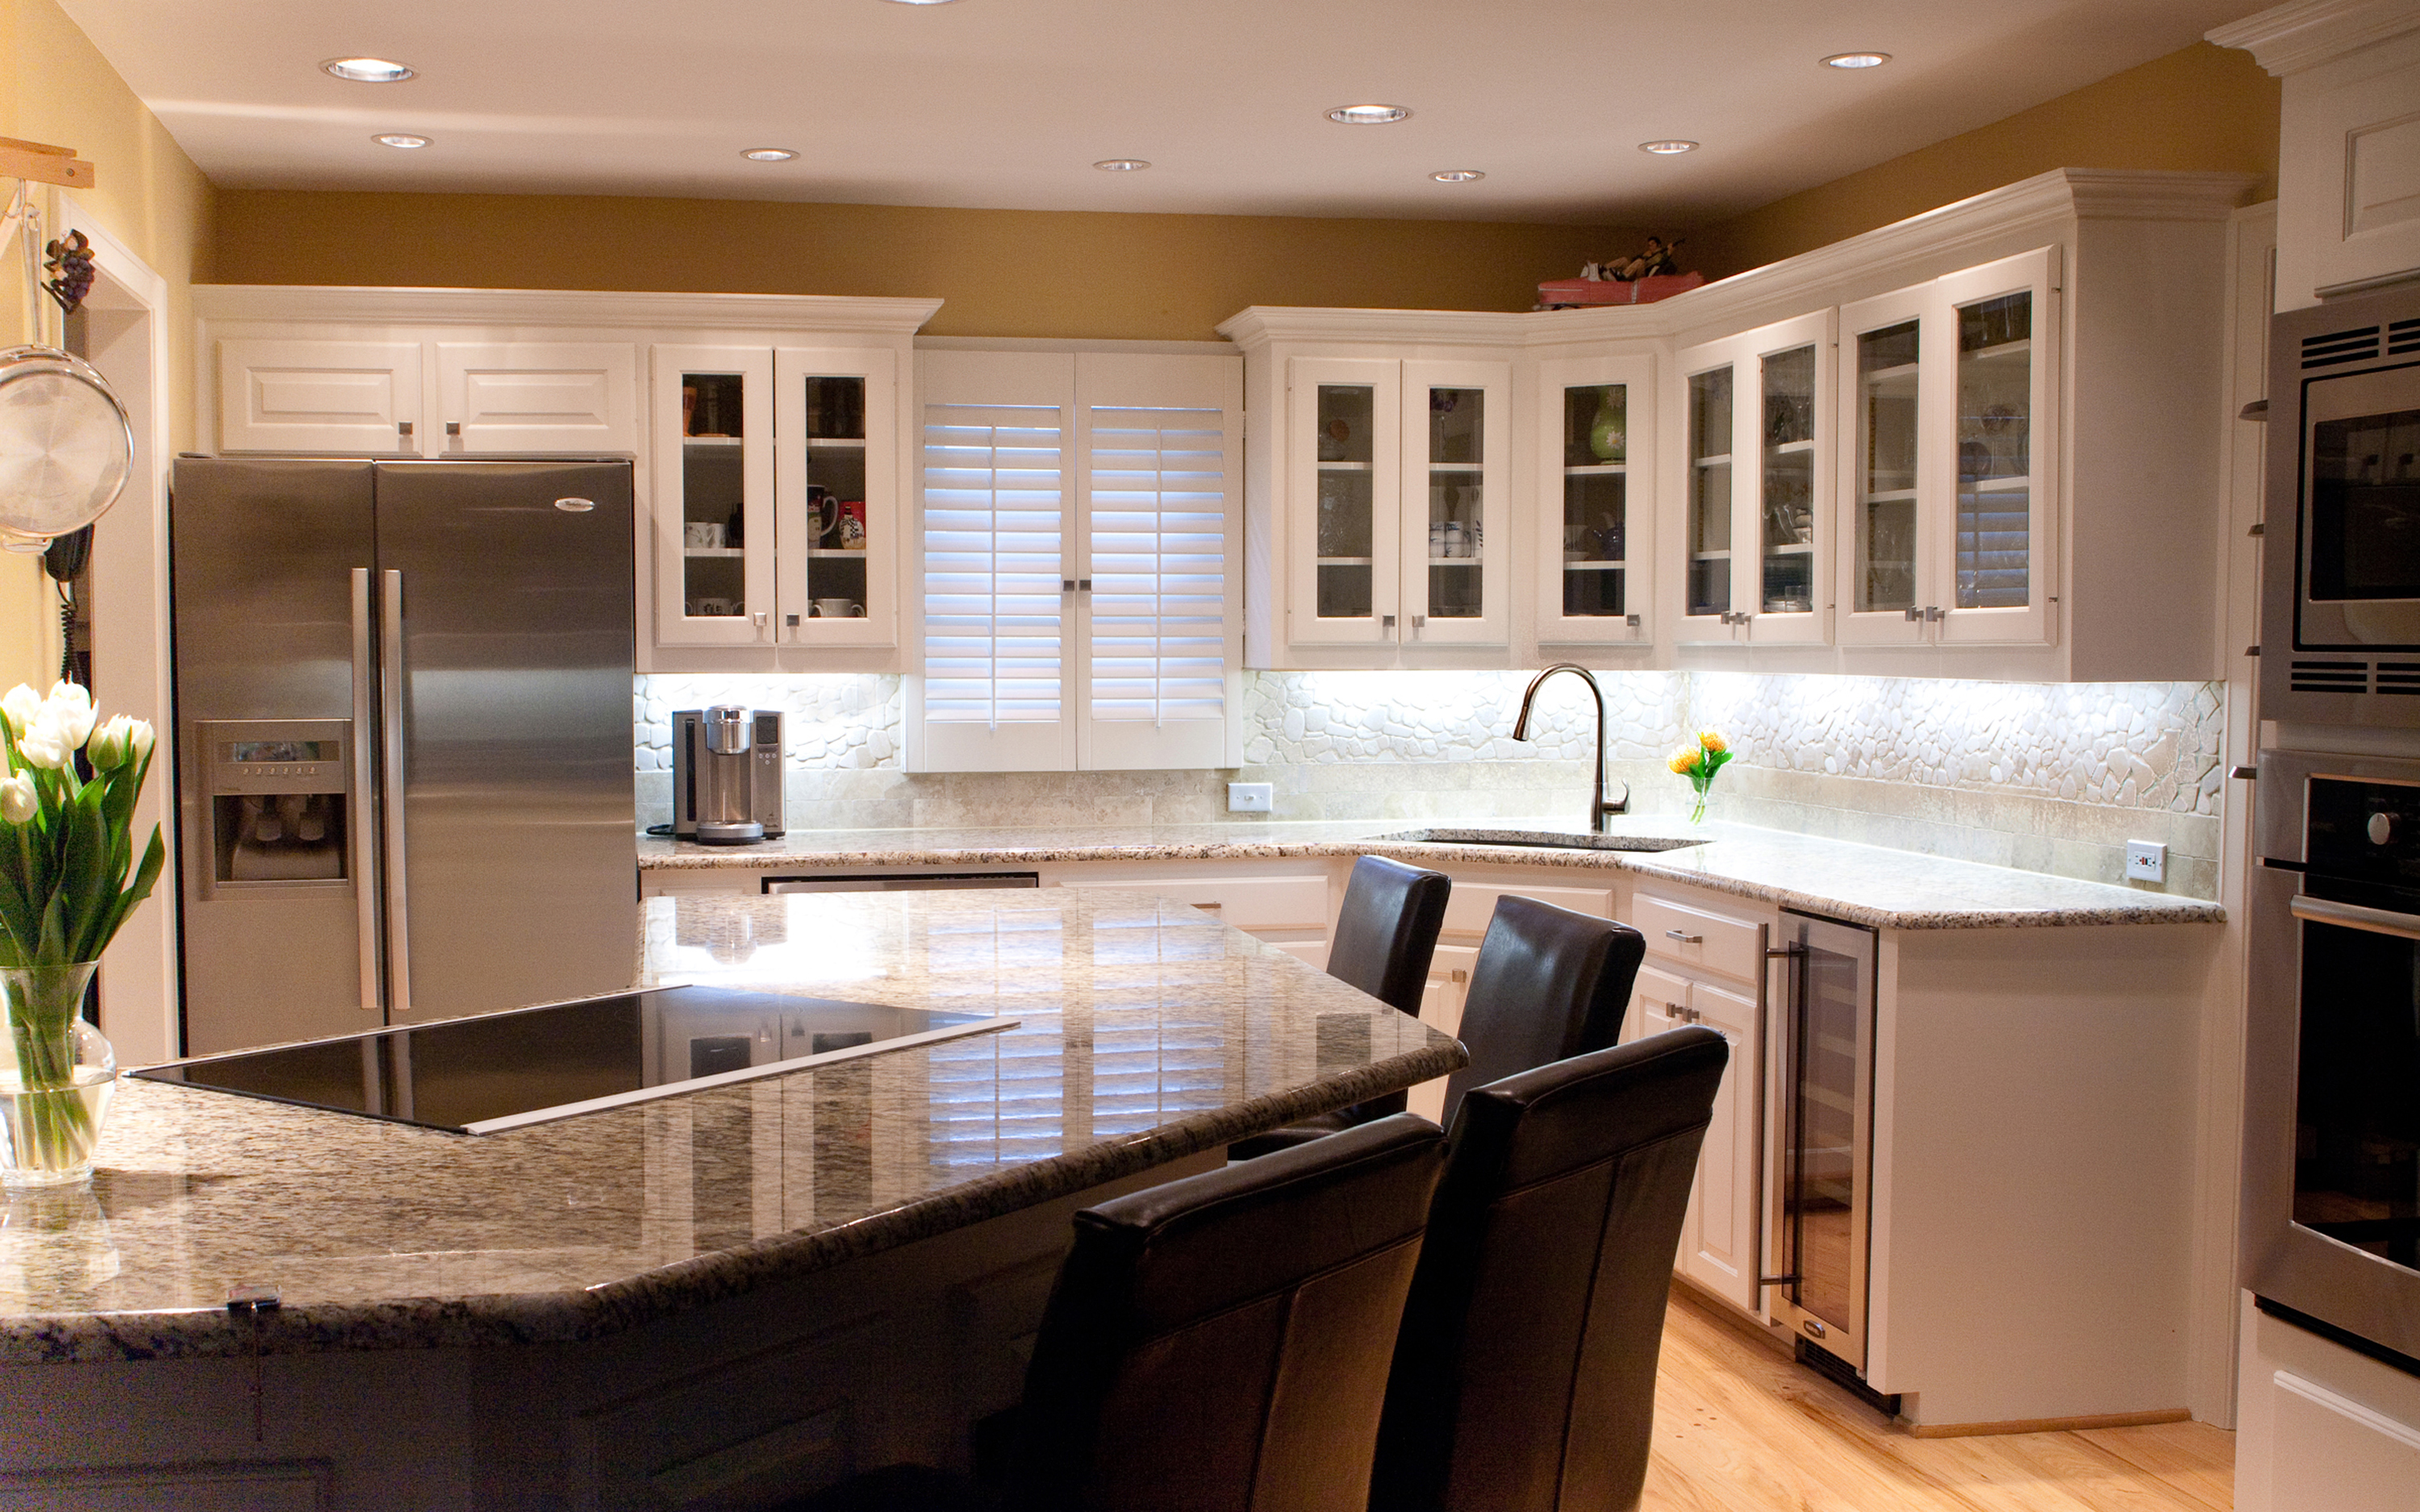 Snappy-Kitchens-Facelift-3-credit-Ruda-Photography